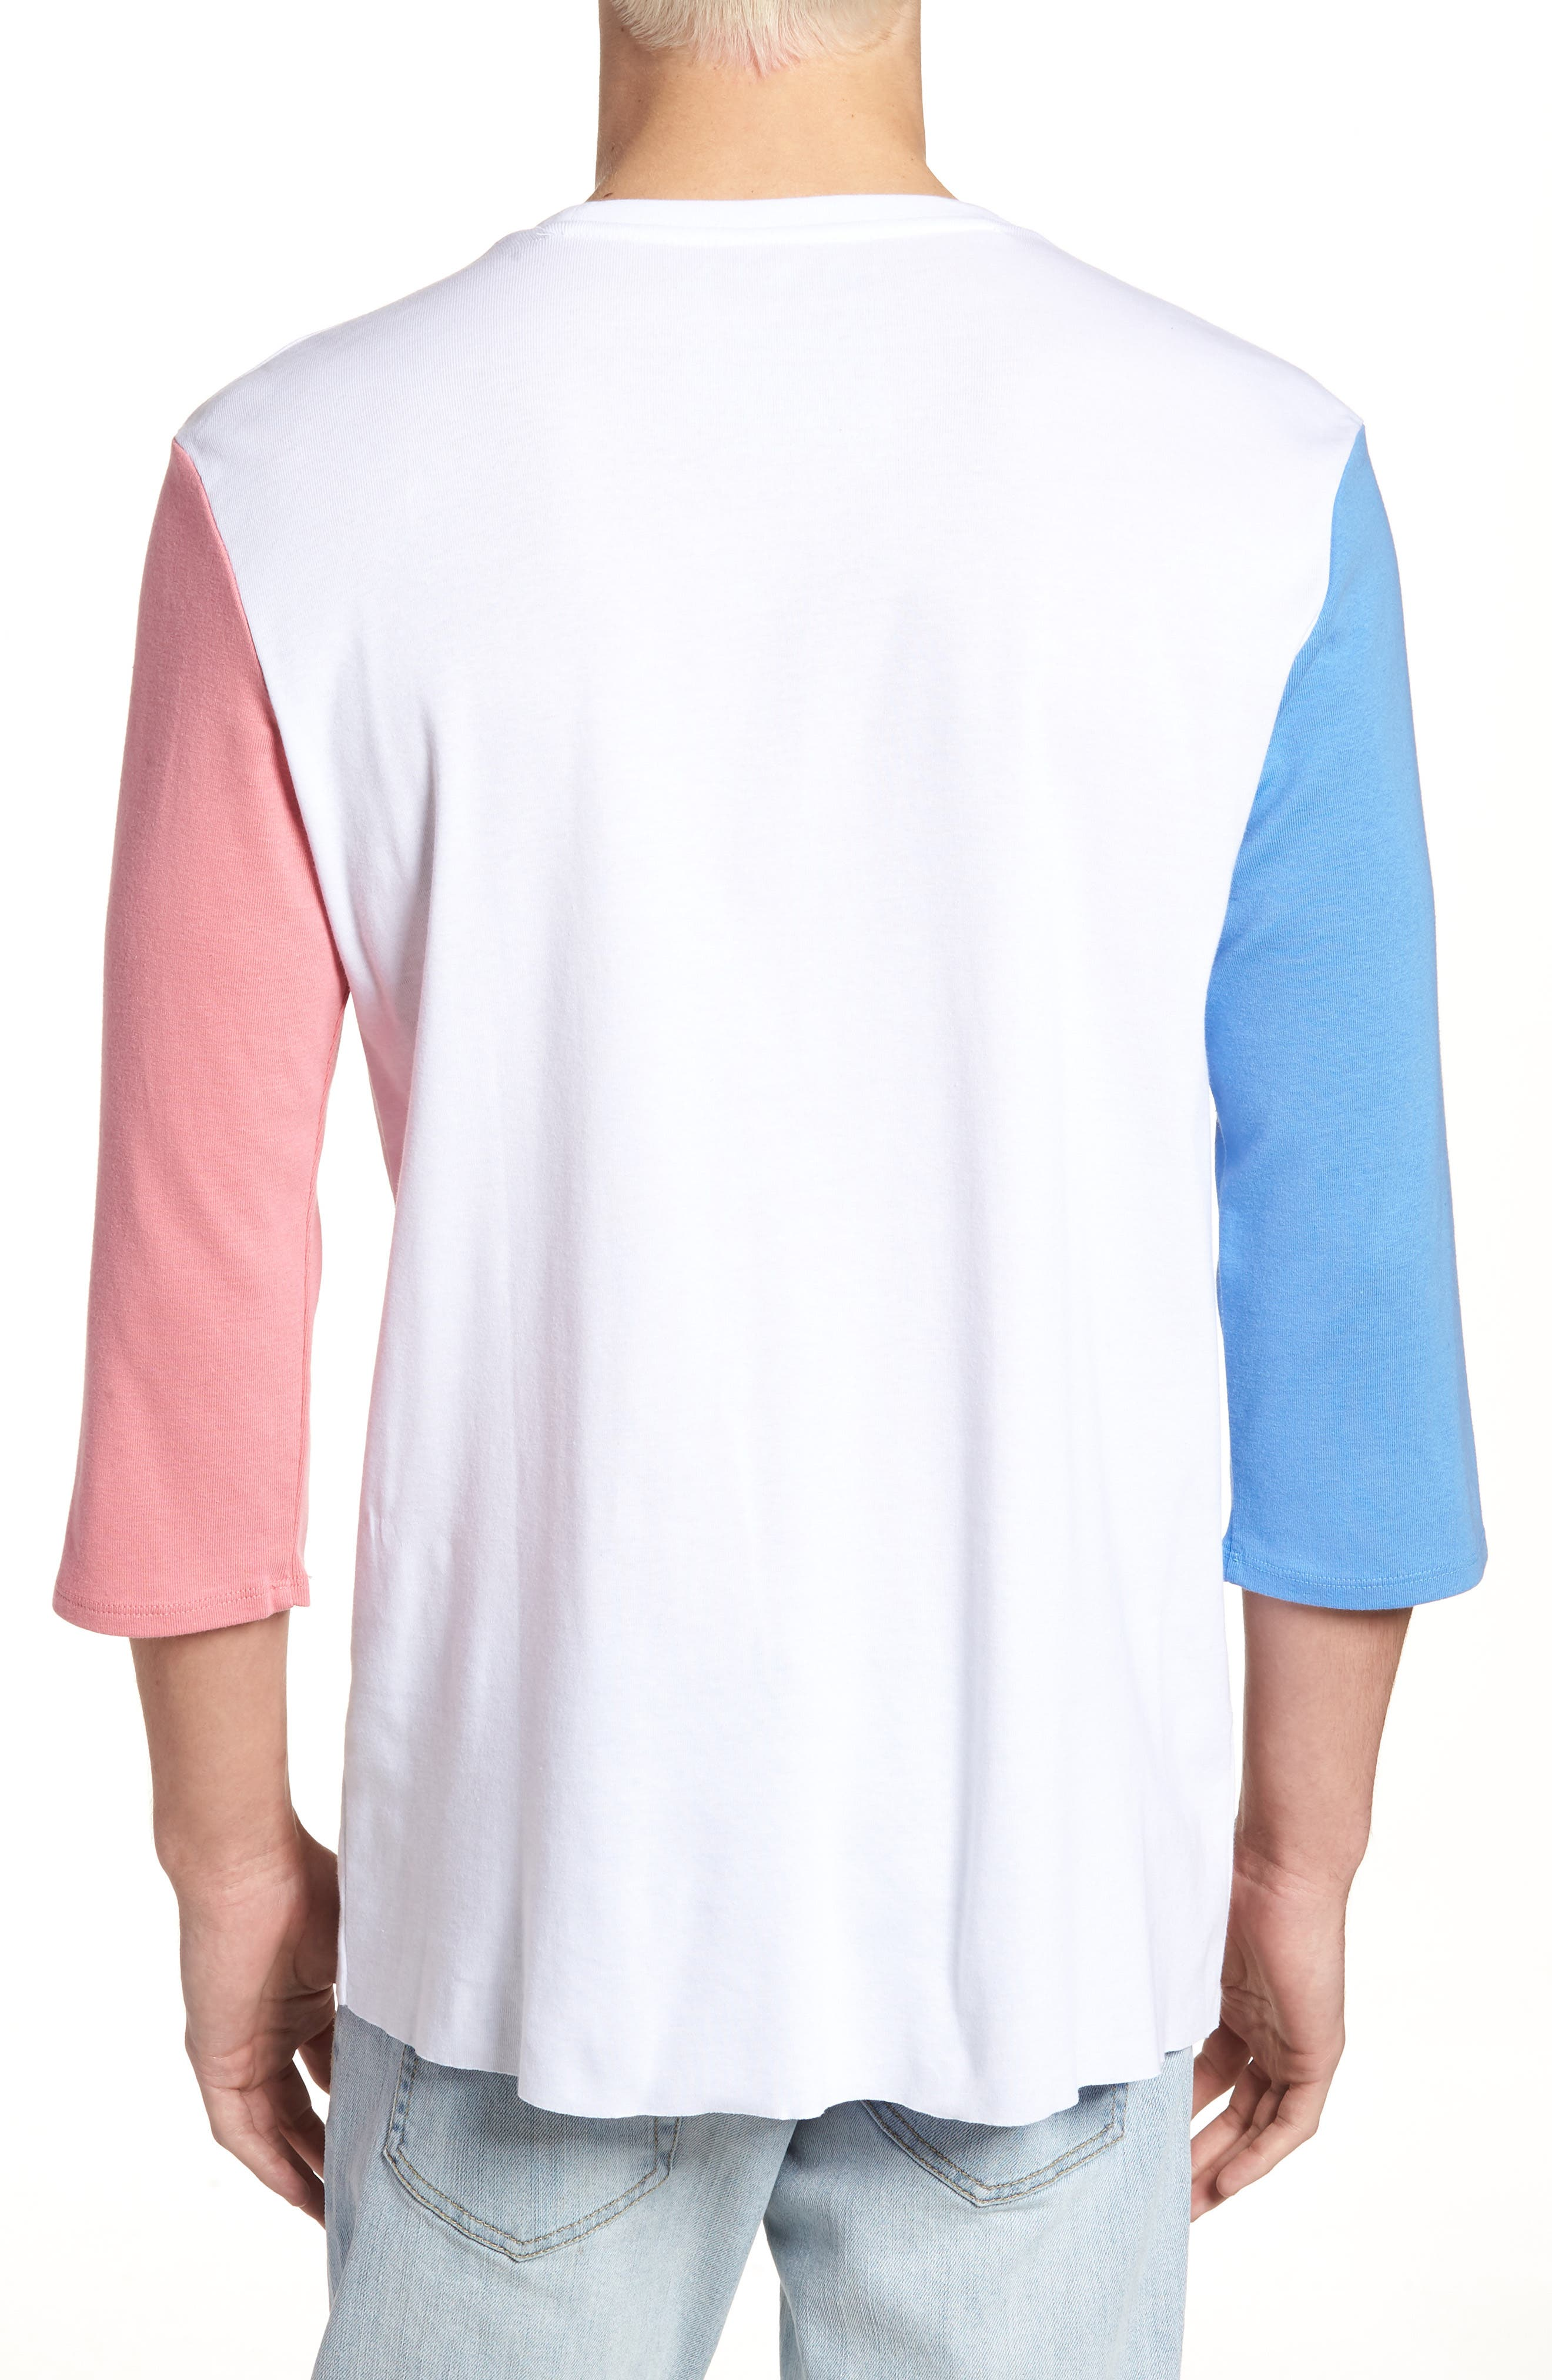 Contrast Sleeve T-Shirt,                             Alternate thumbnail 2, color,                             White/ Pink / Blue